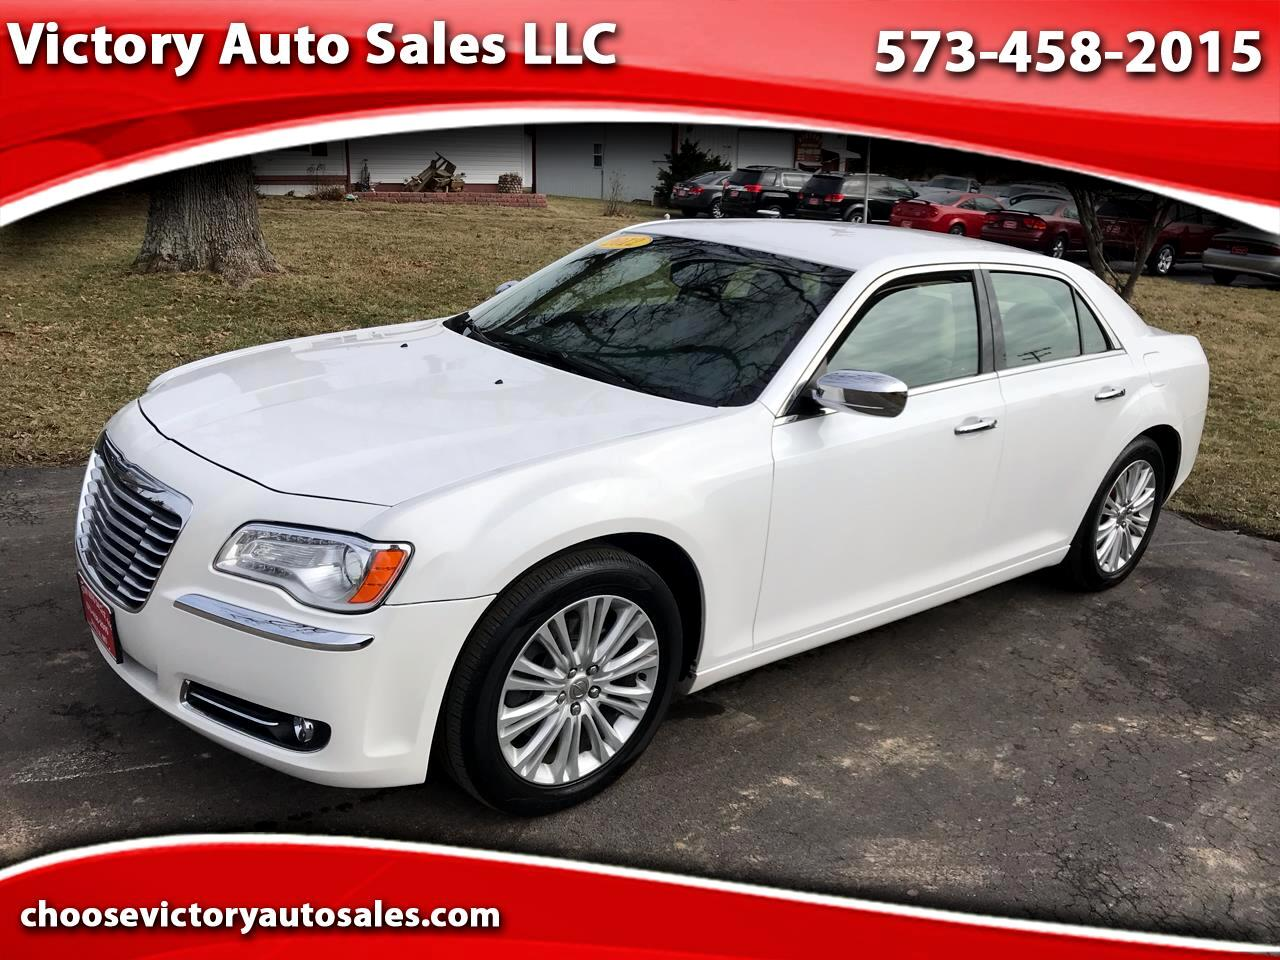 2012 Chrysler 300 4dr Sdn 300 Limited AWD